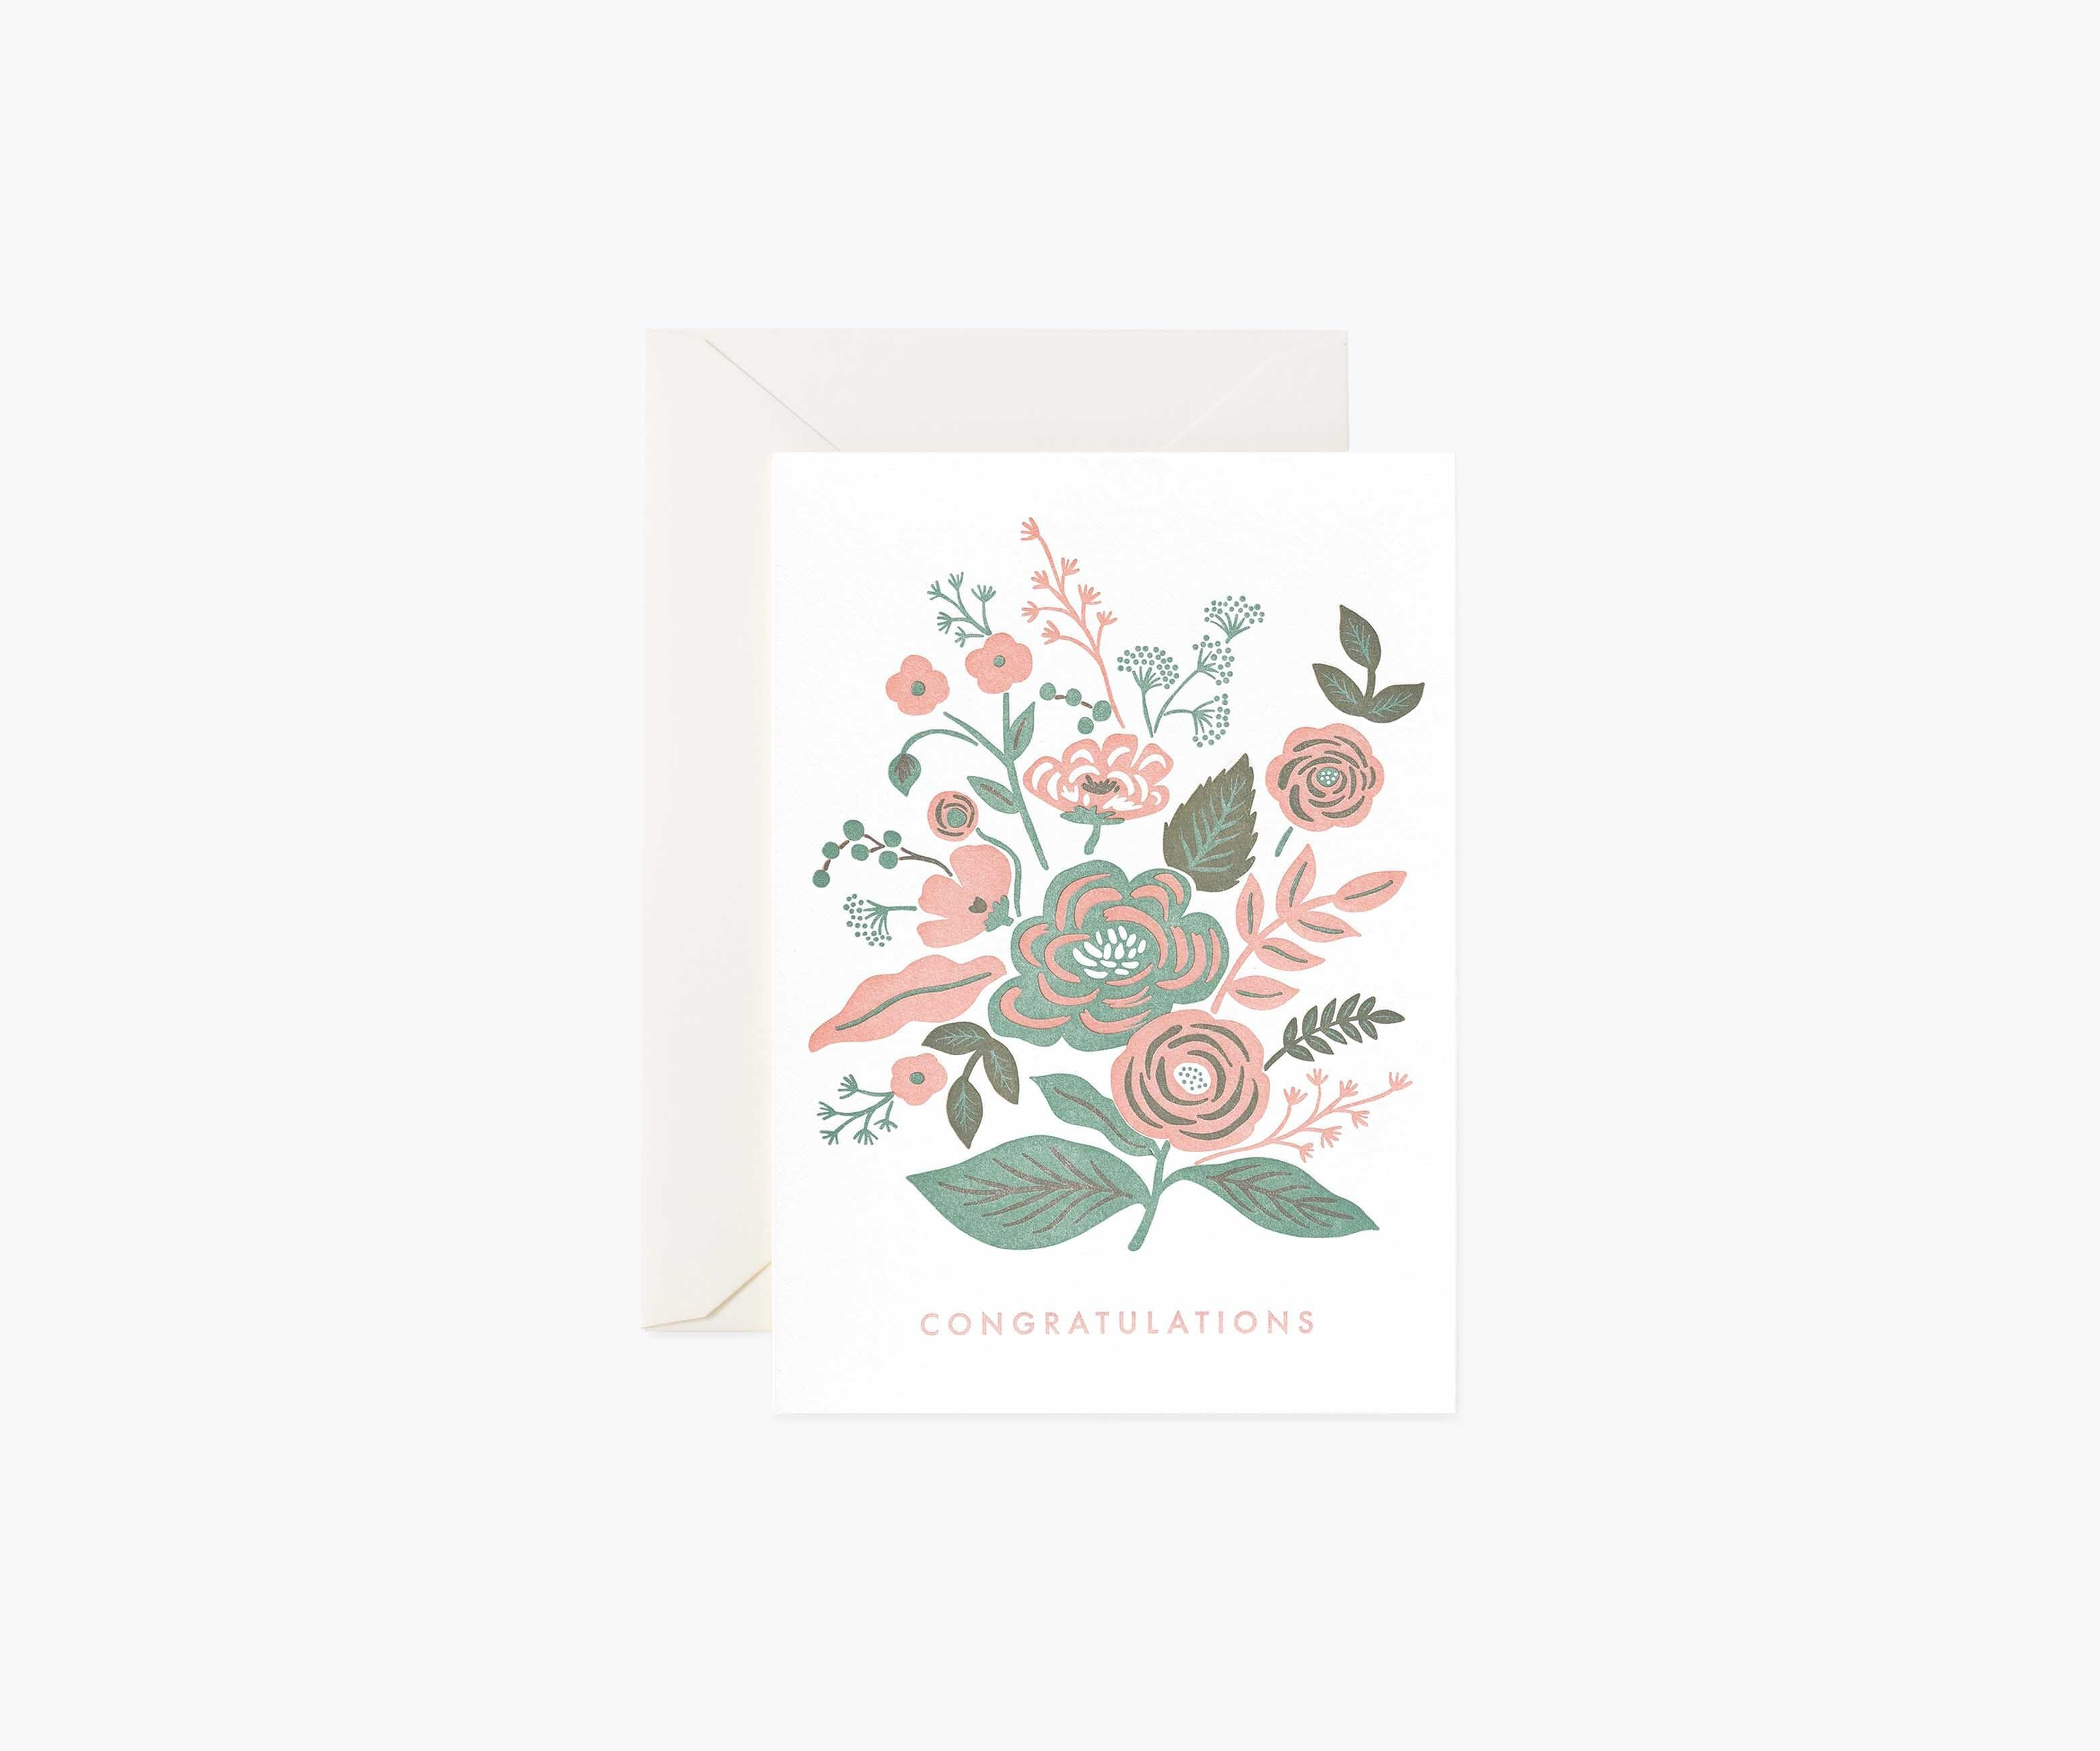 Garden Congrats Letterpress, Rifle Paper Co.